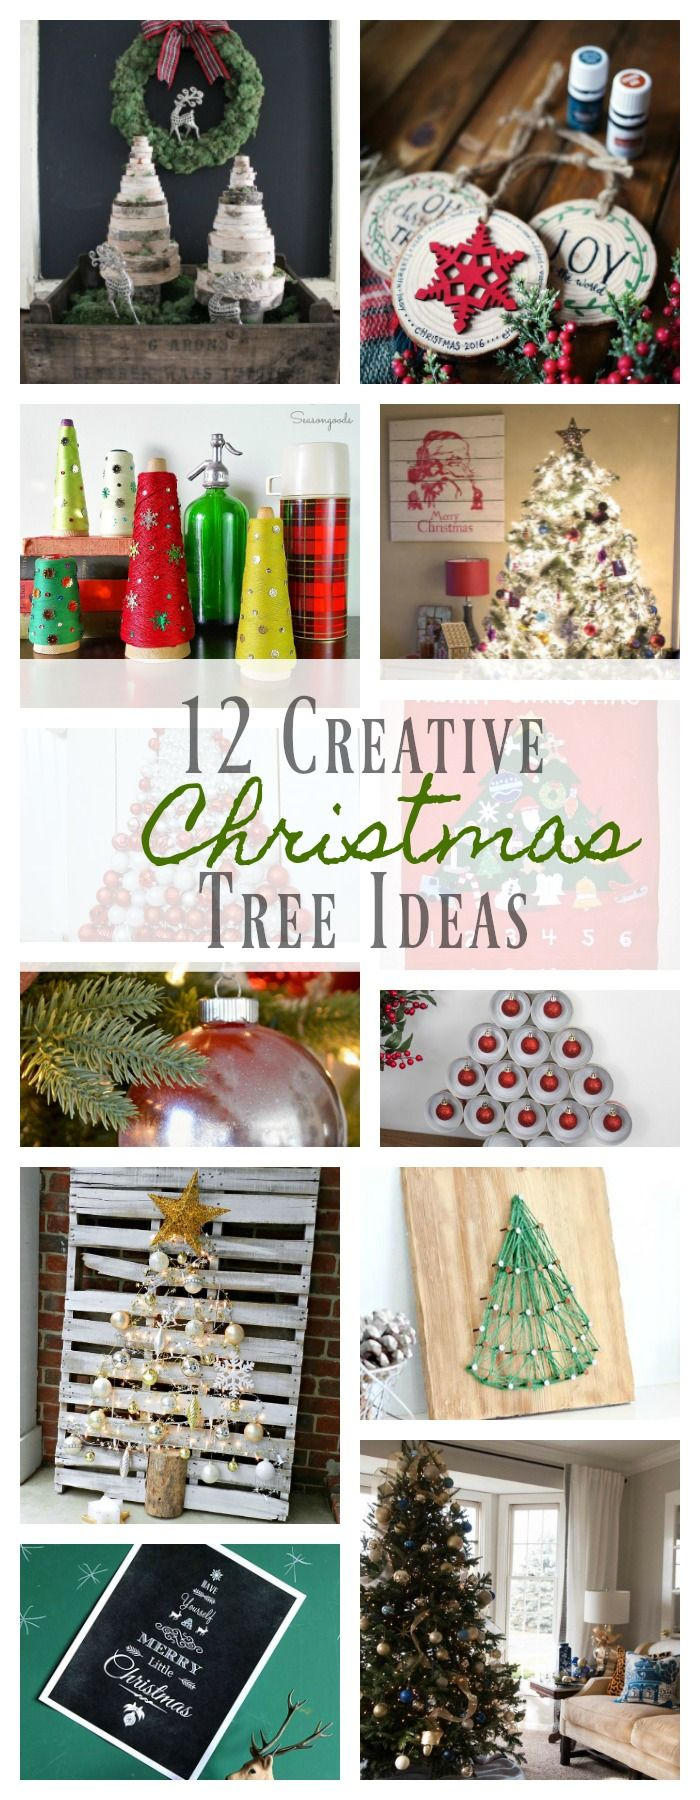 12 Creative Christmas Tree Ideas